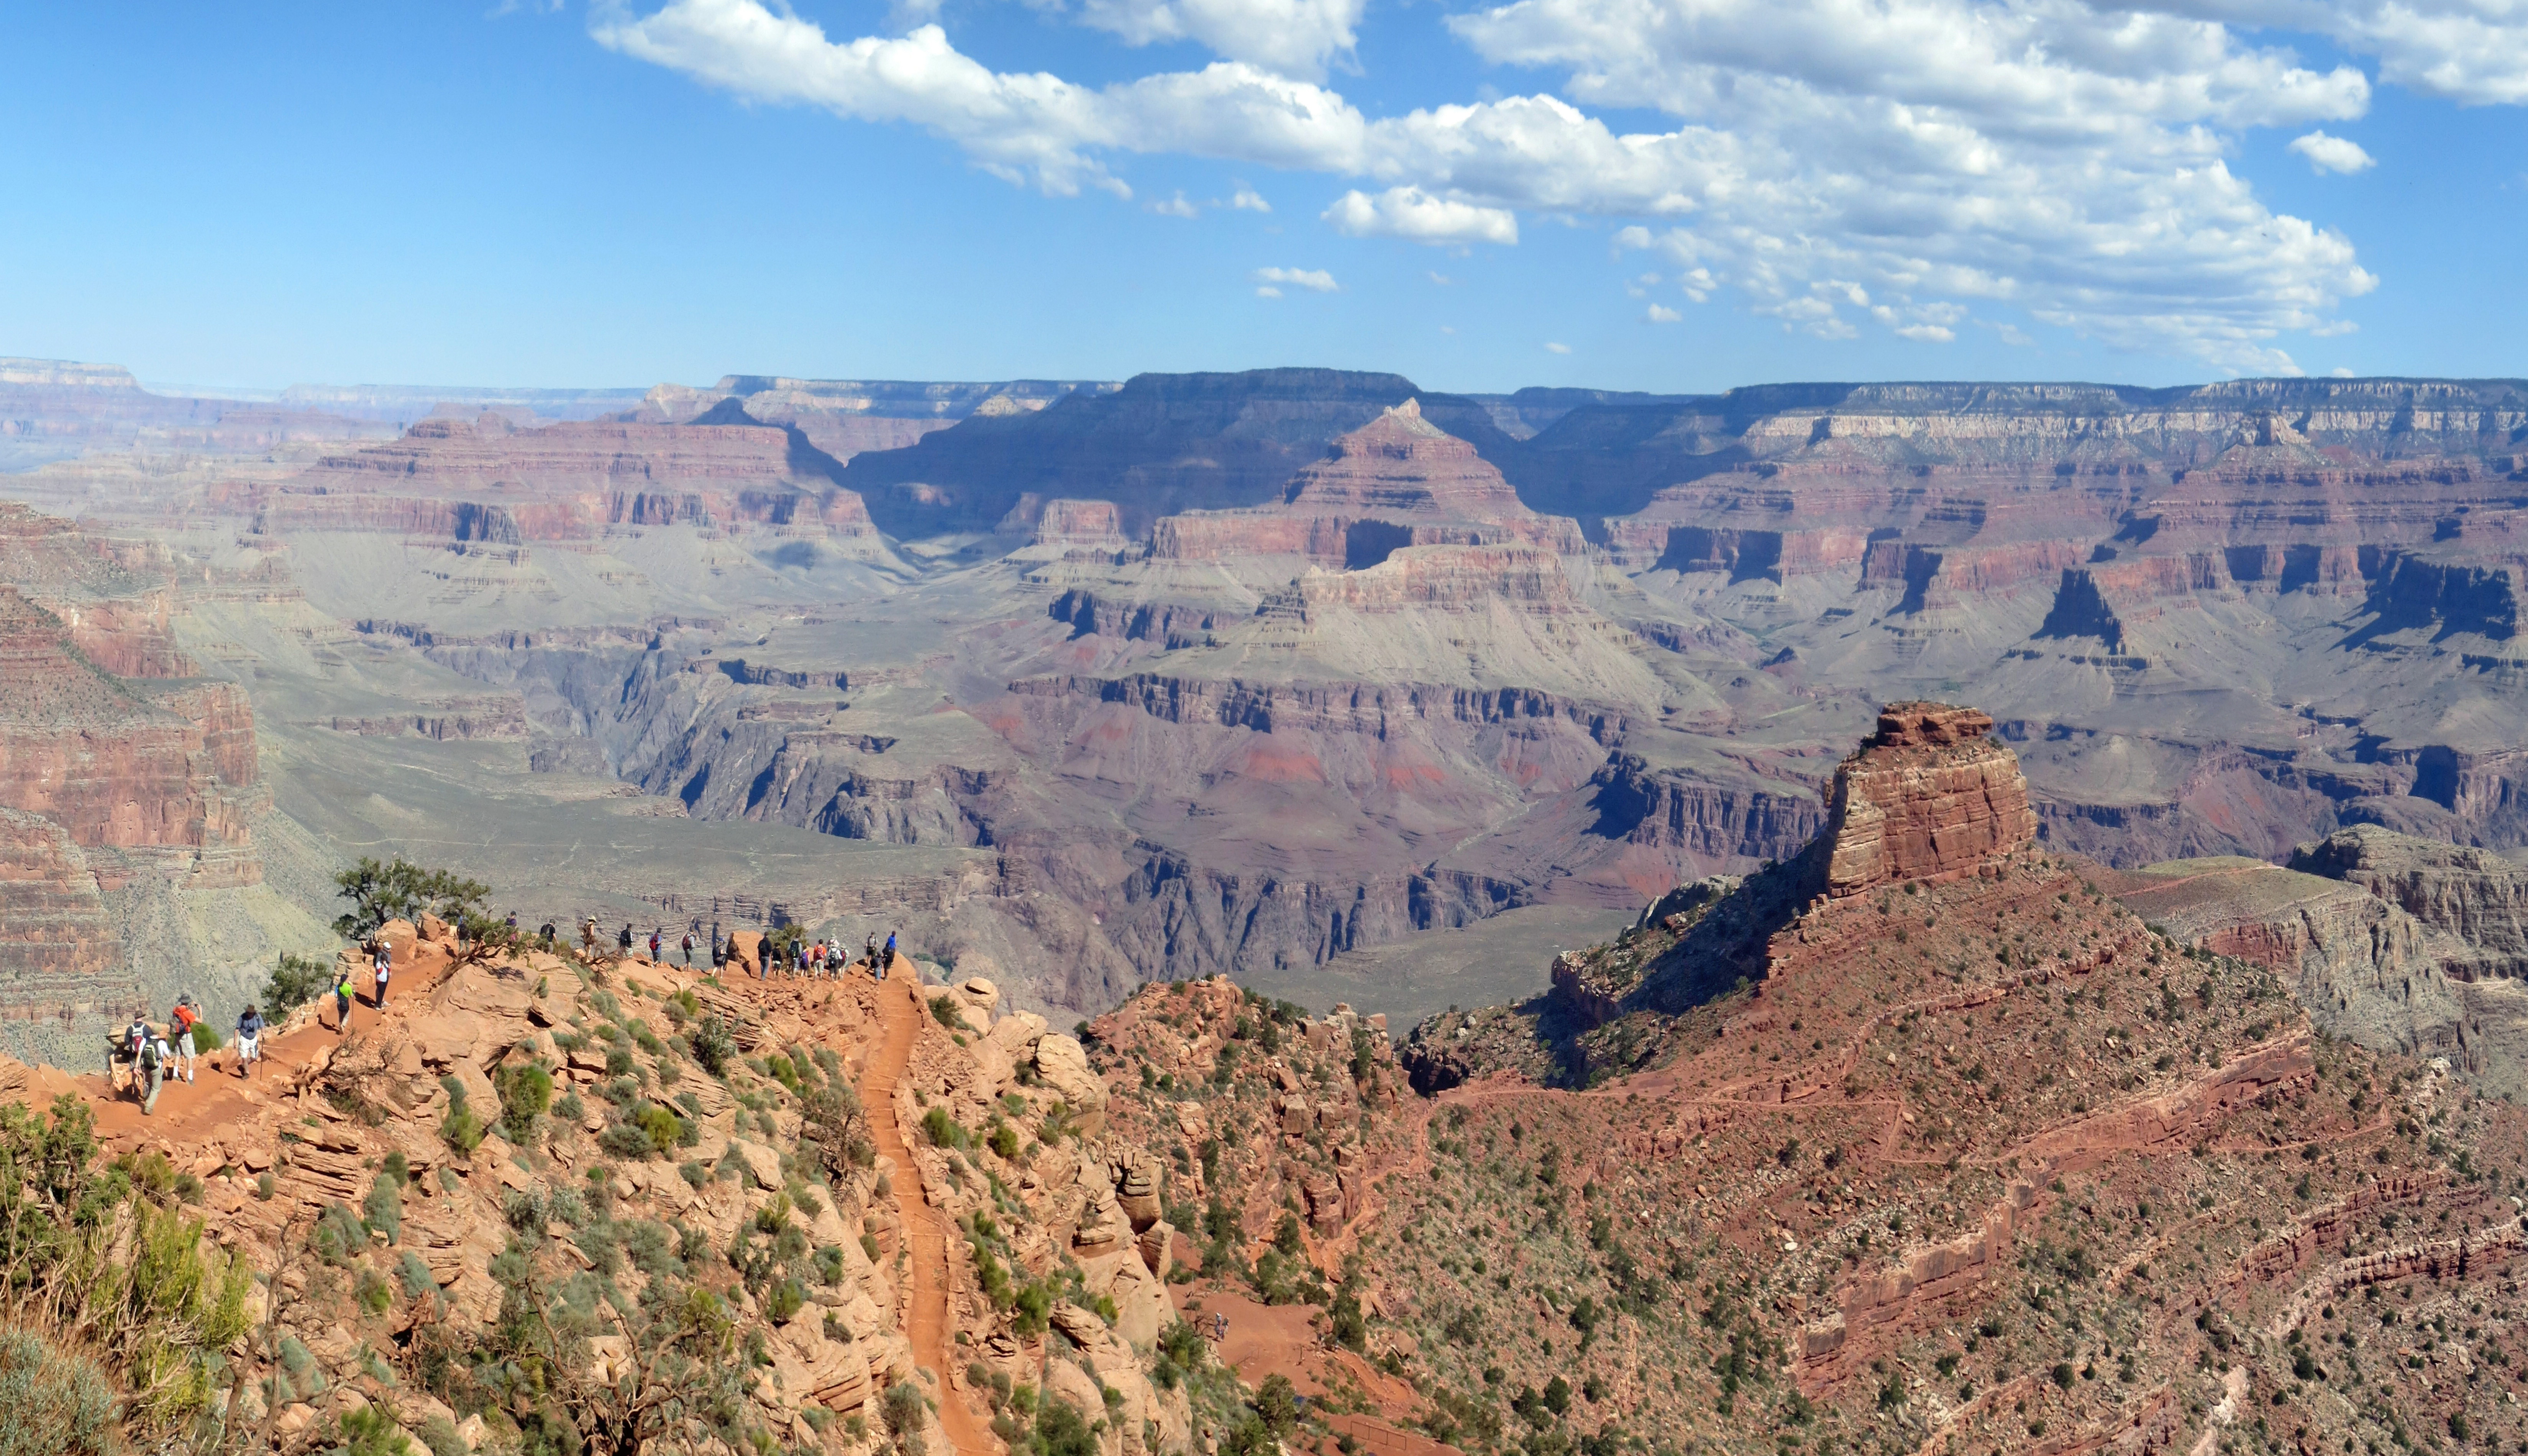 1- The Grand Canyon (United States)